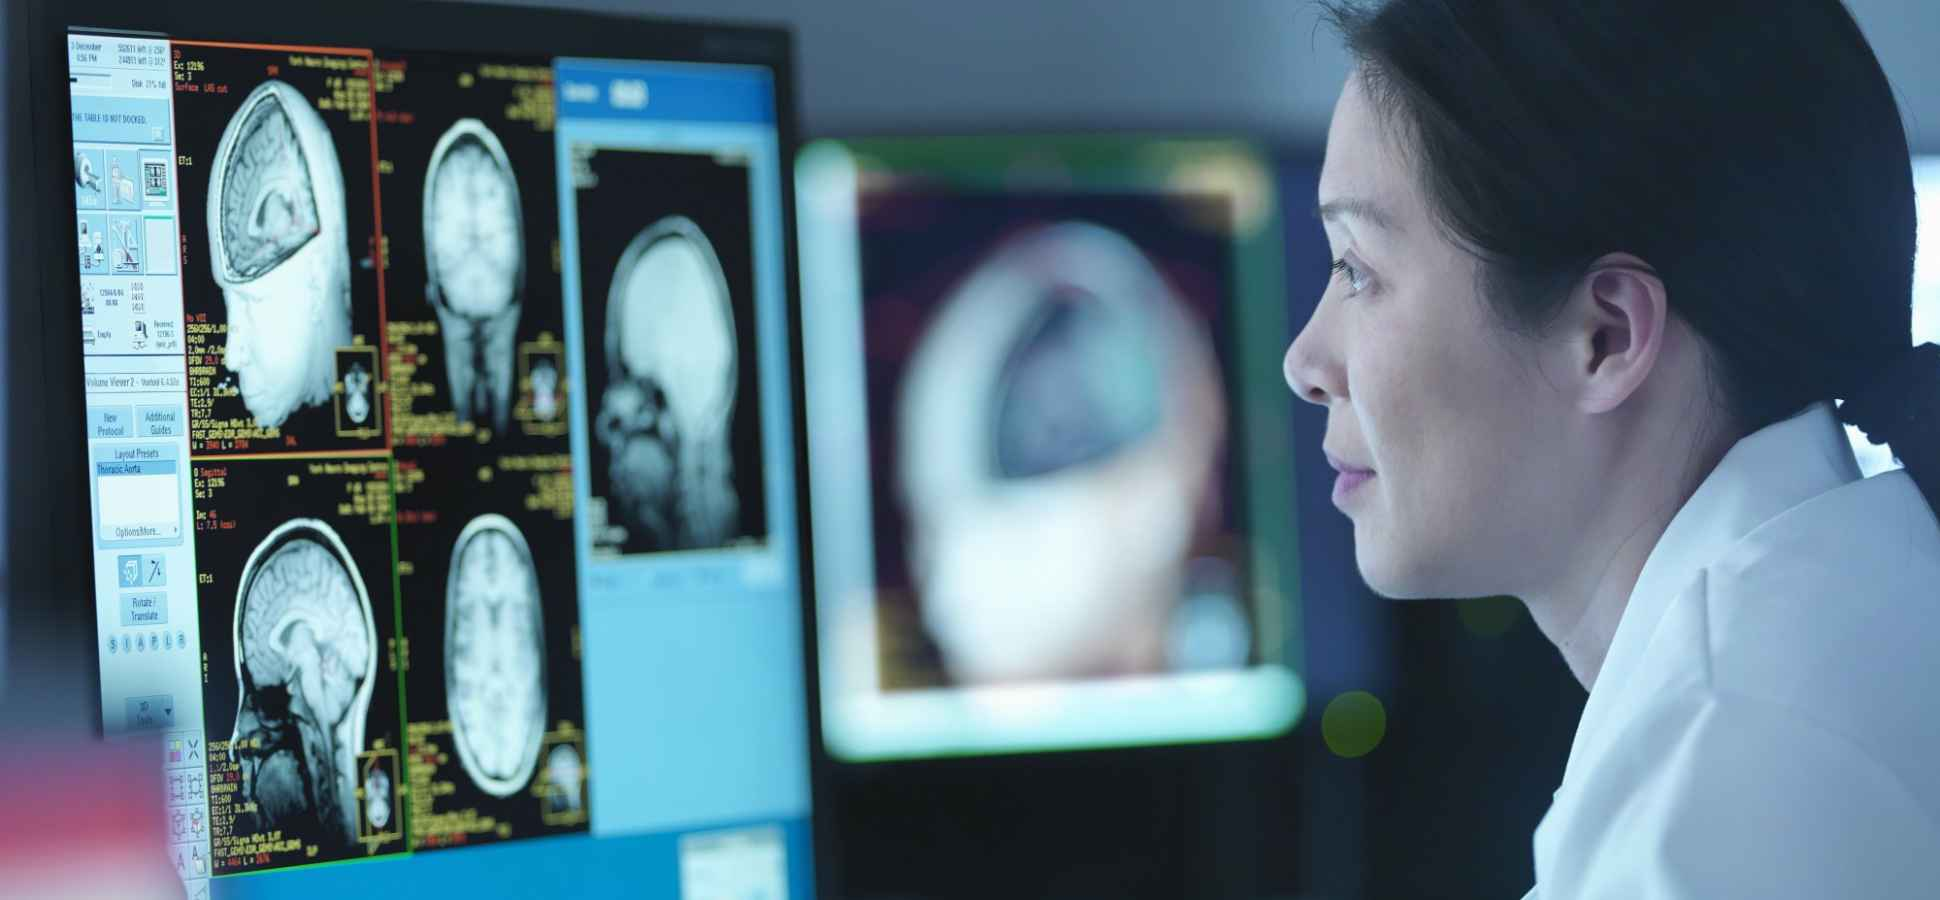 Neuroscientists Can Now Tell How Smart You Are From a Brain Scan